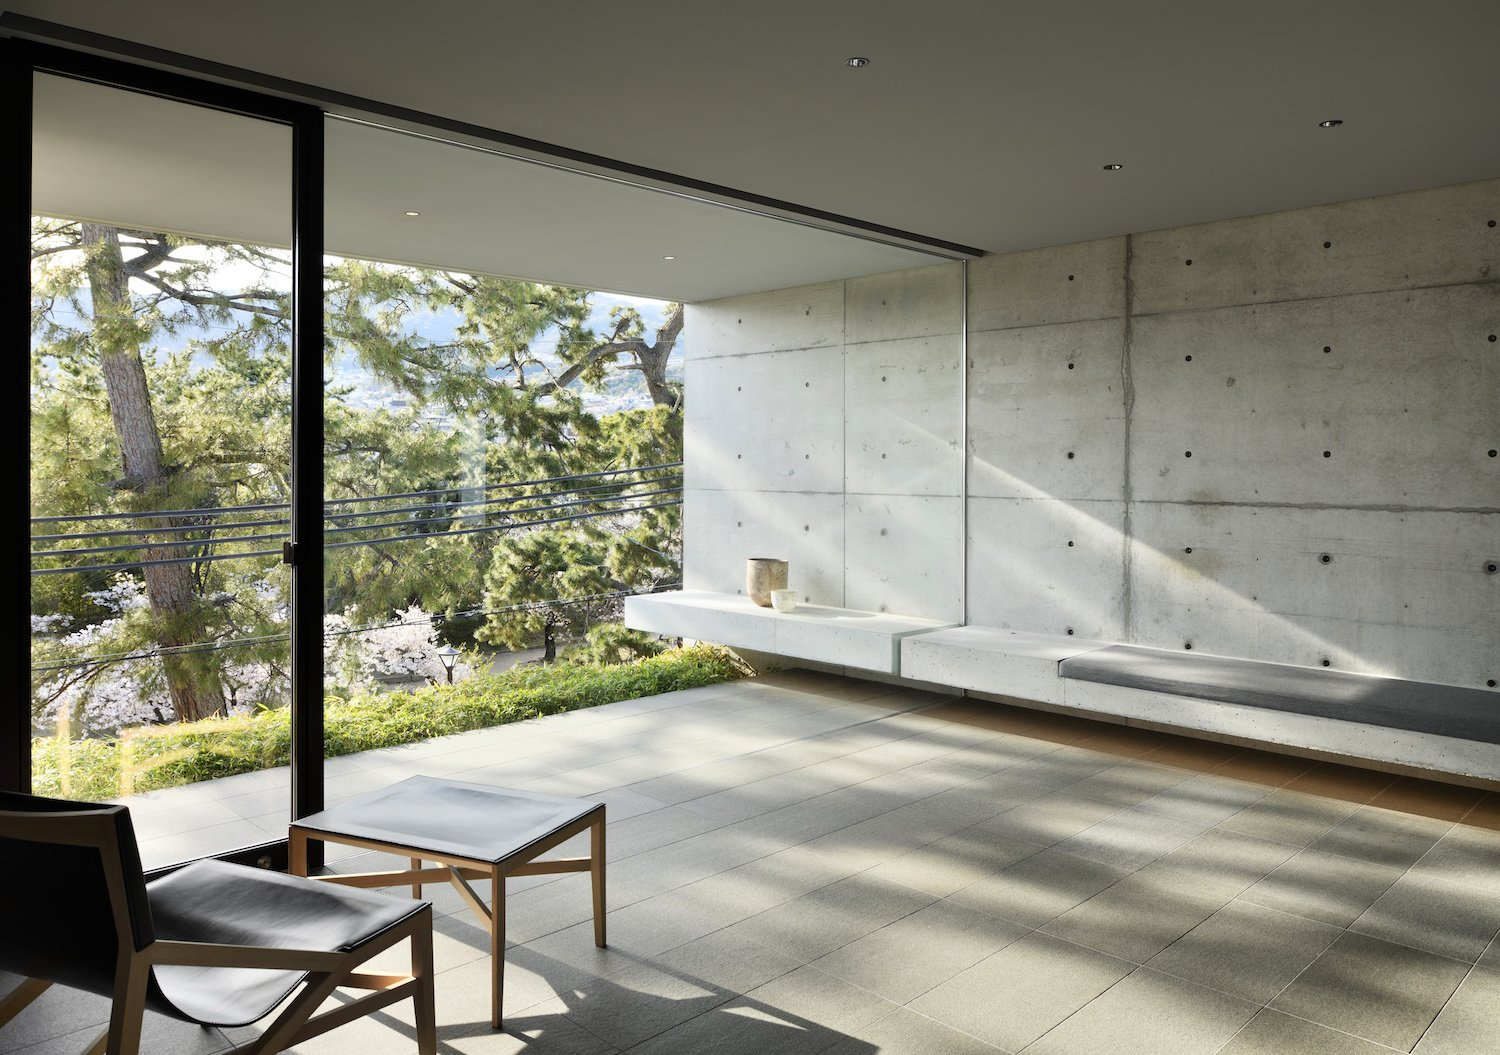 Photo 1 of 12 in This Japanese Architect's Live/Work Space Embodies Quiet Reflection